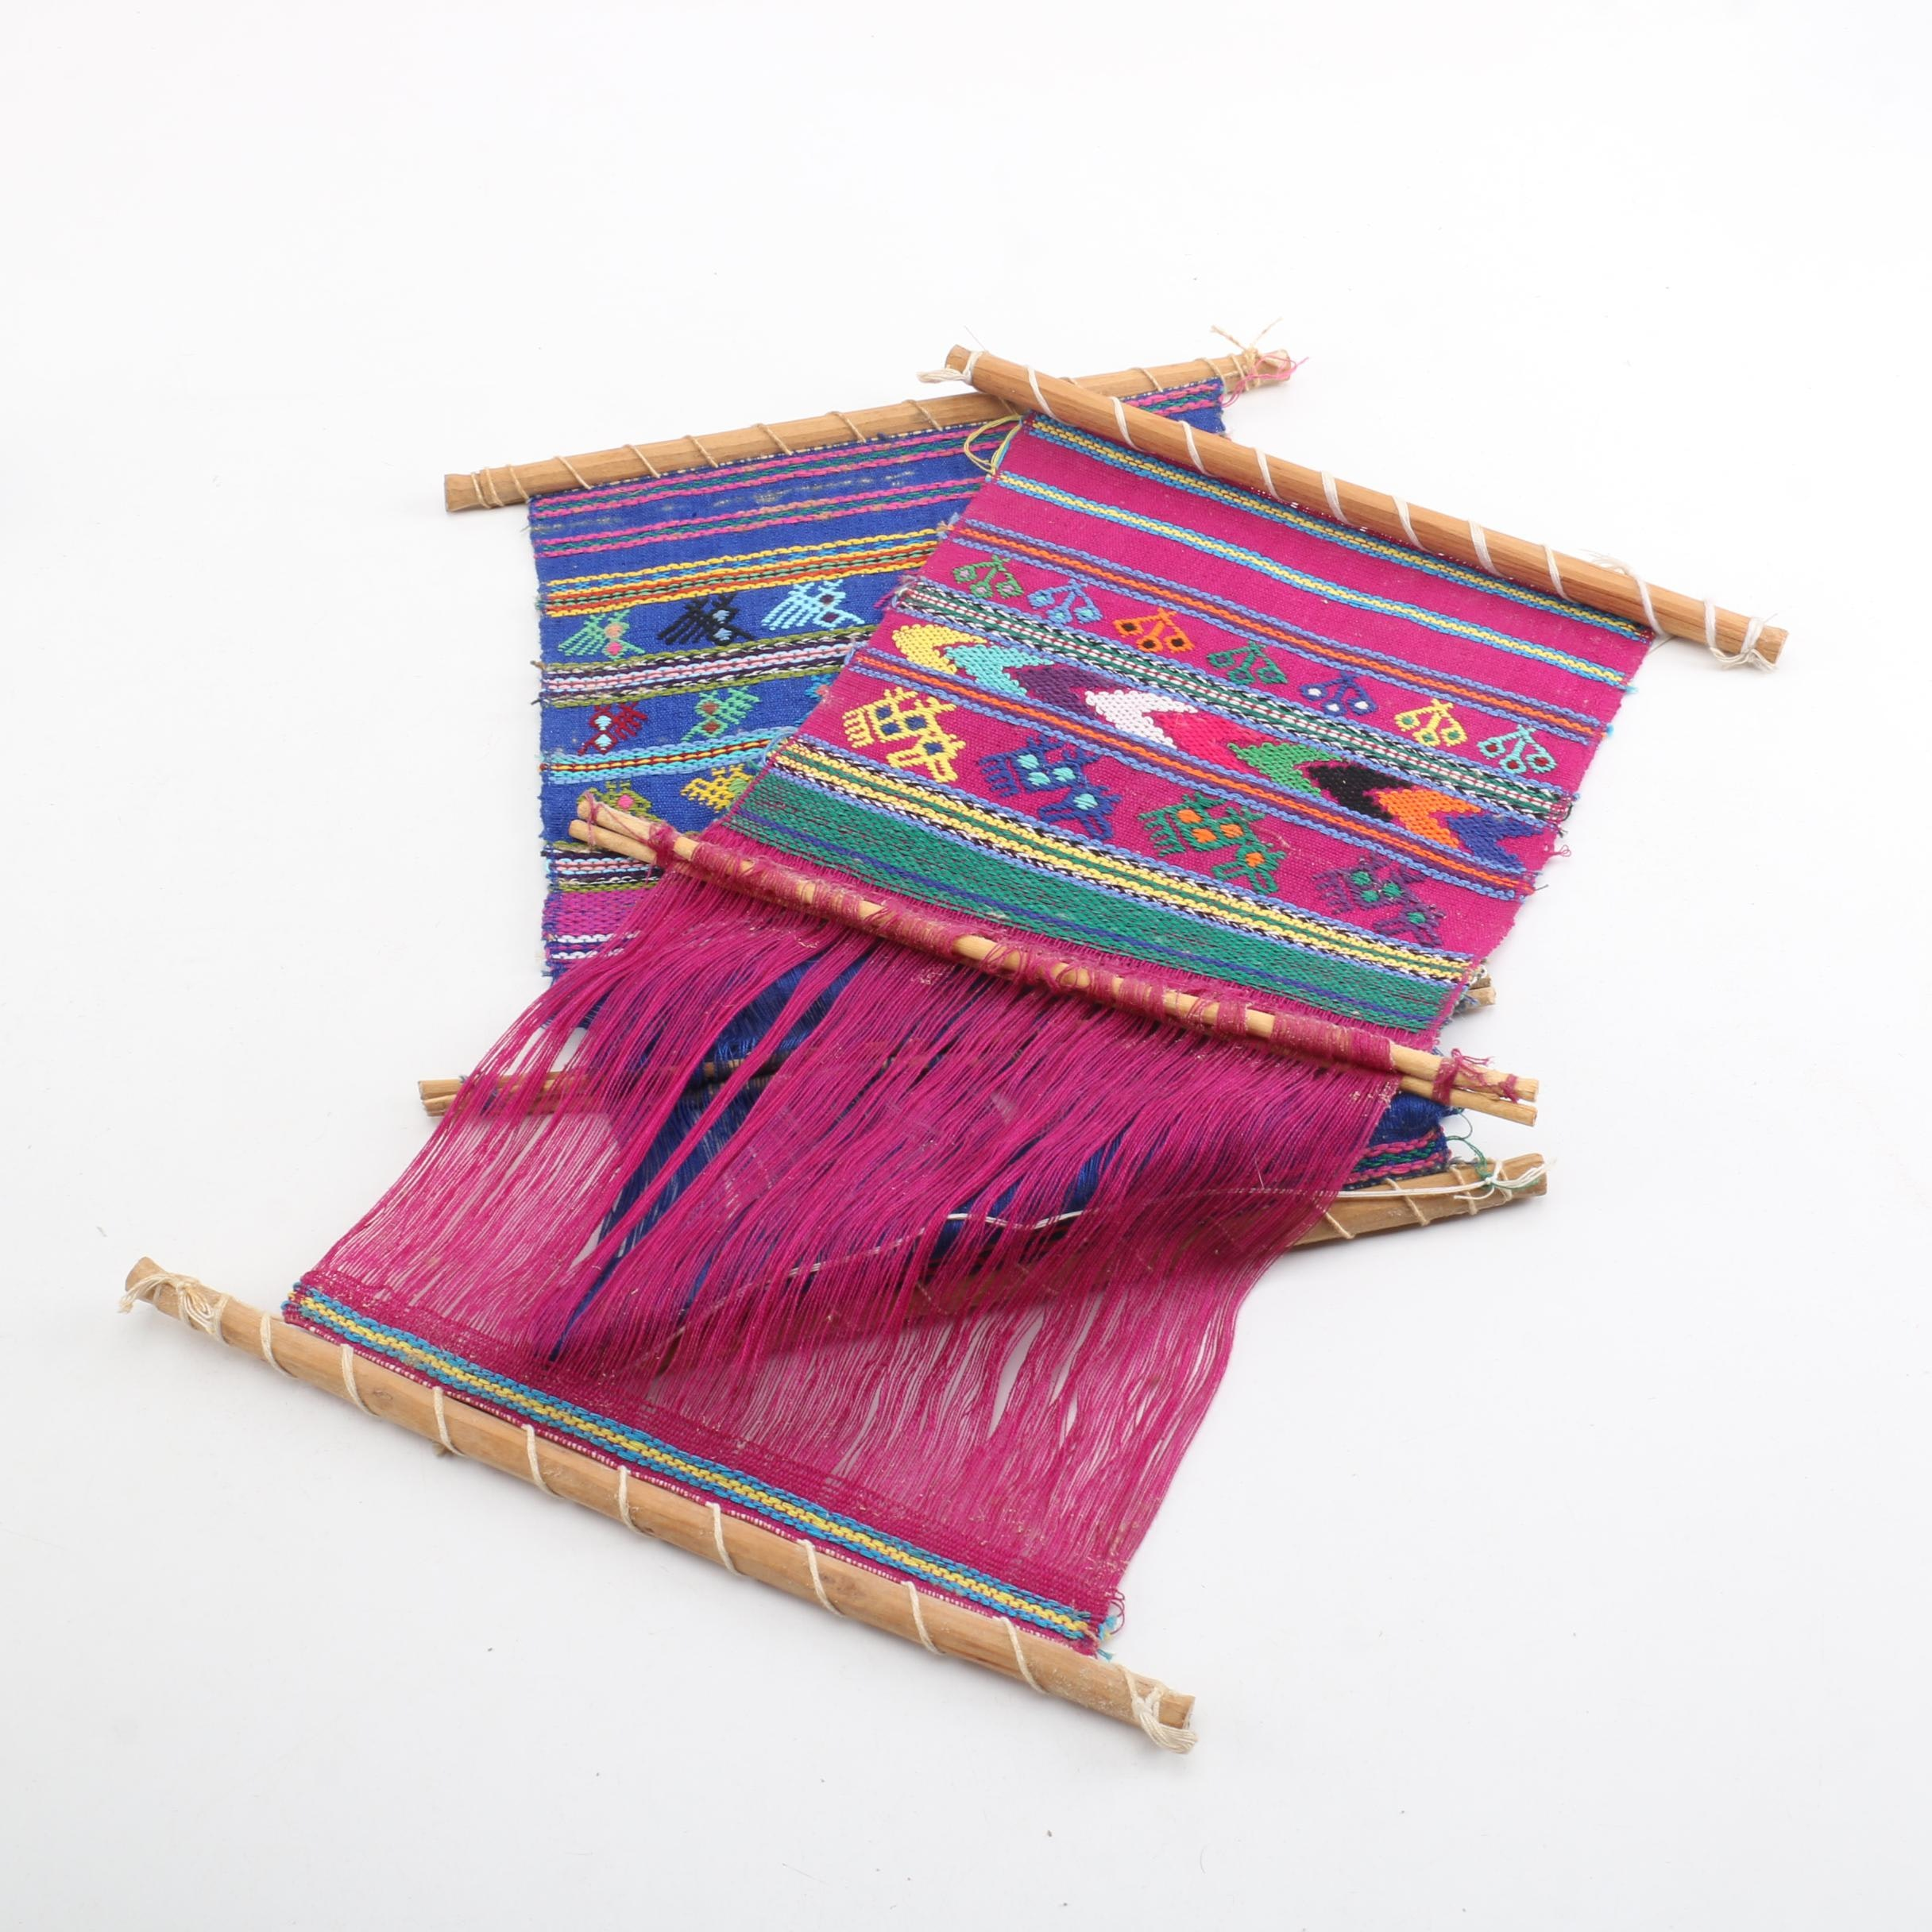 Handwoven Central American Textiles on Backstrap Looms